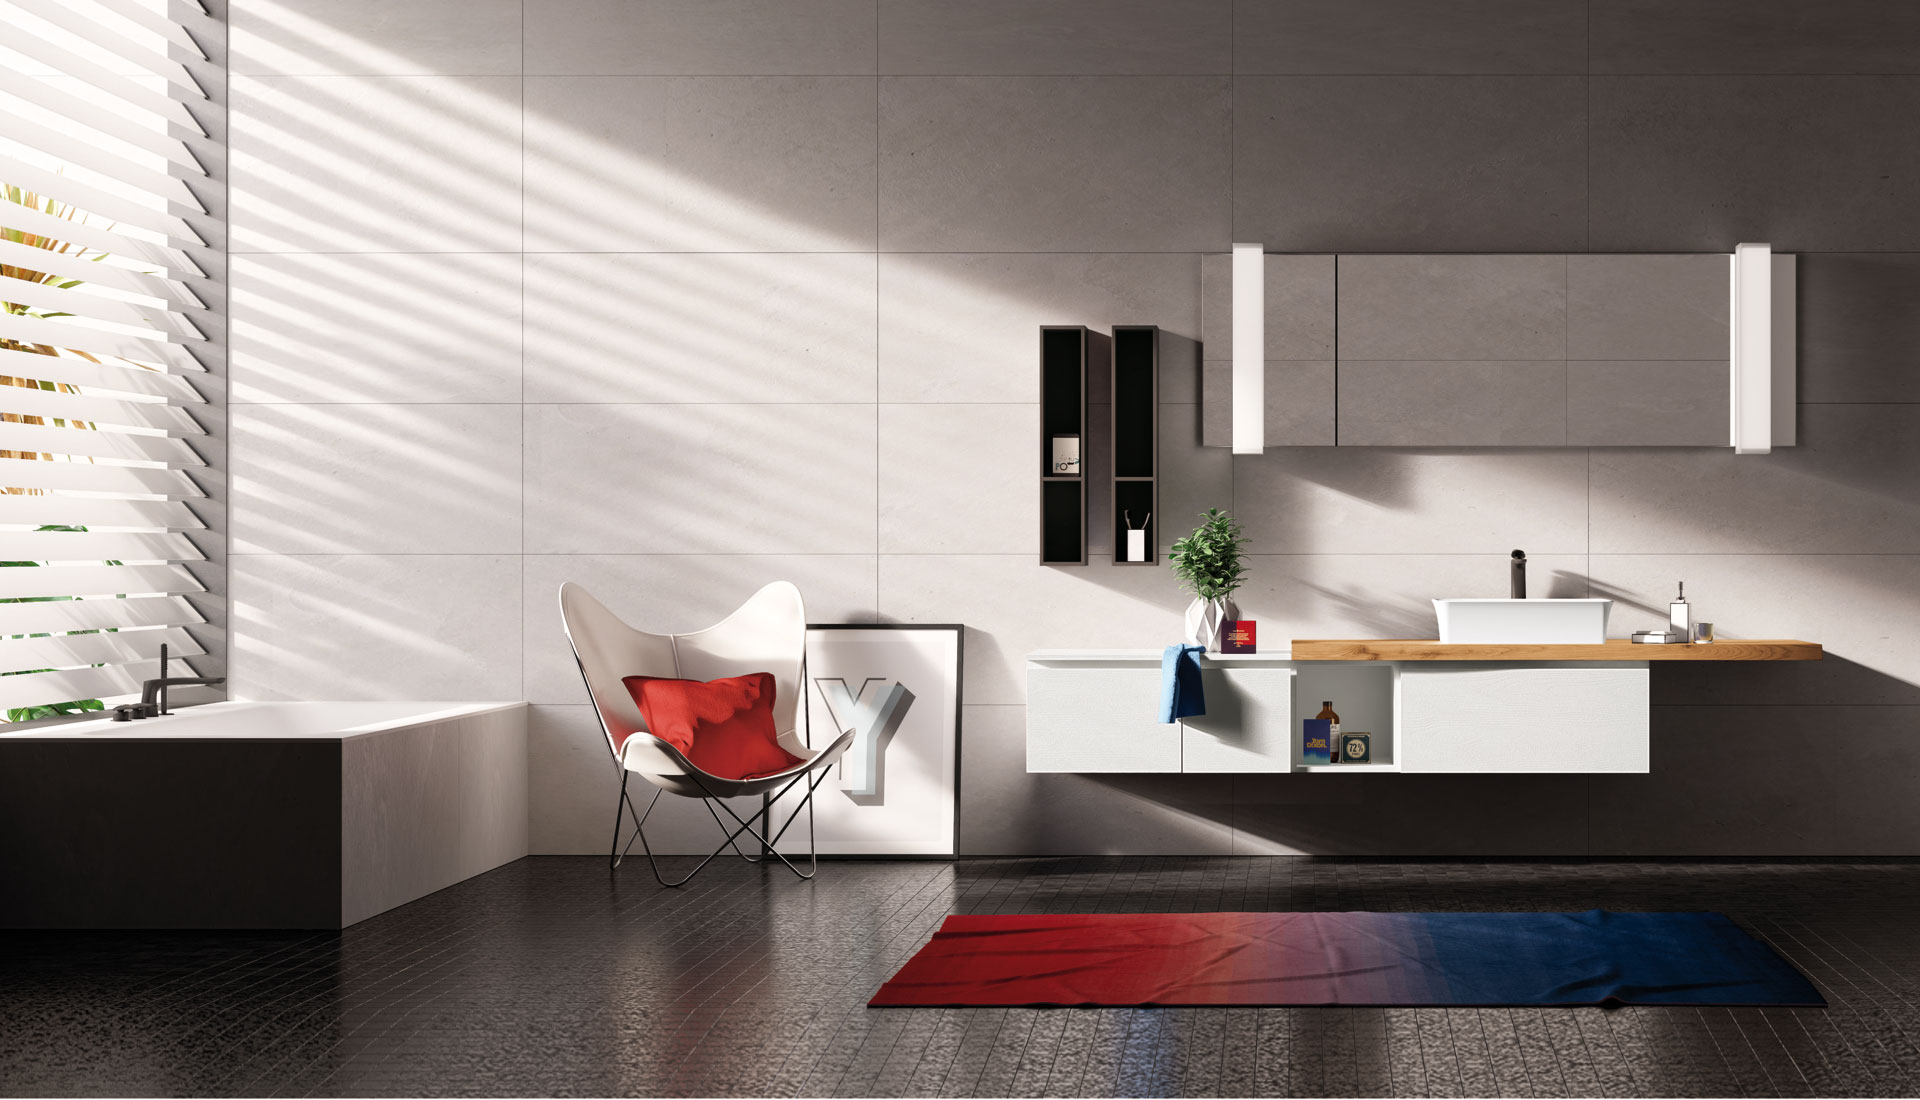 Awesome Will Also House The Companys Full Range Of Bedroom Furniture Made In The Heart Of The Black Country, As Well As Leading Bands Such As Aquadart, Bosch, Methven, Rangemaster And Vitra Paul Goddard, Head Bathroom Designer,